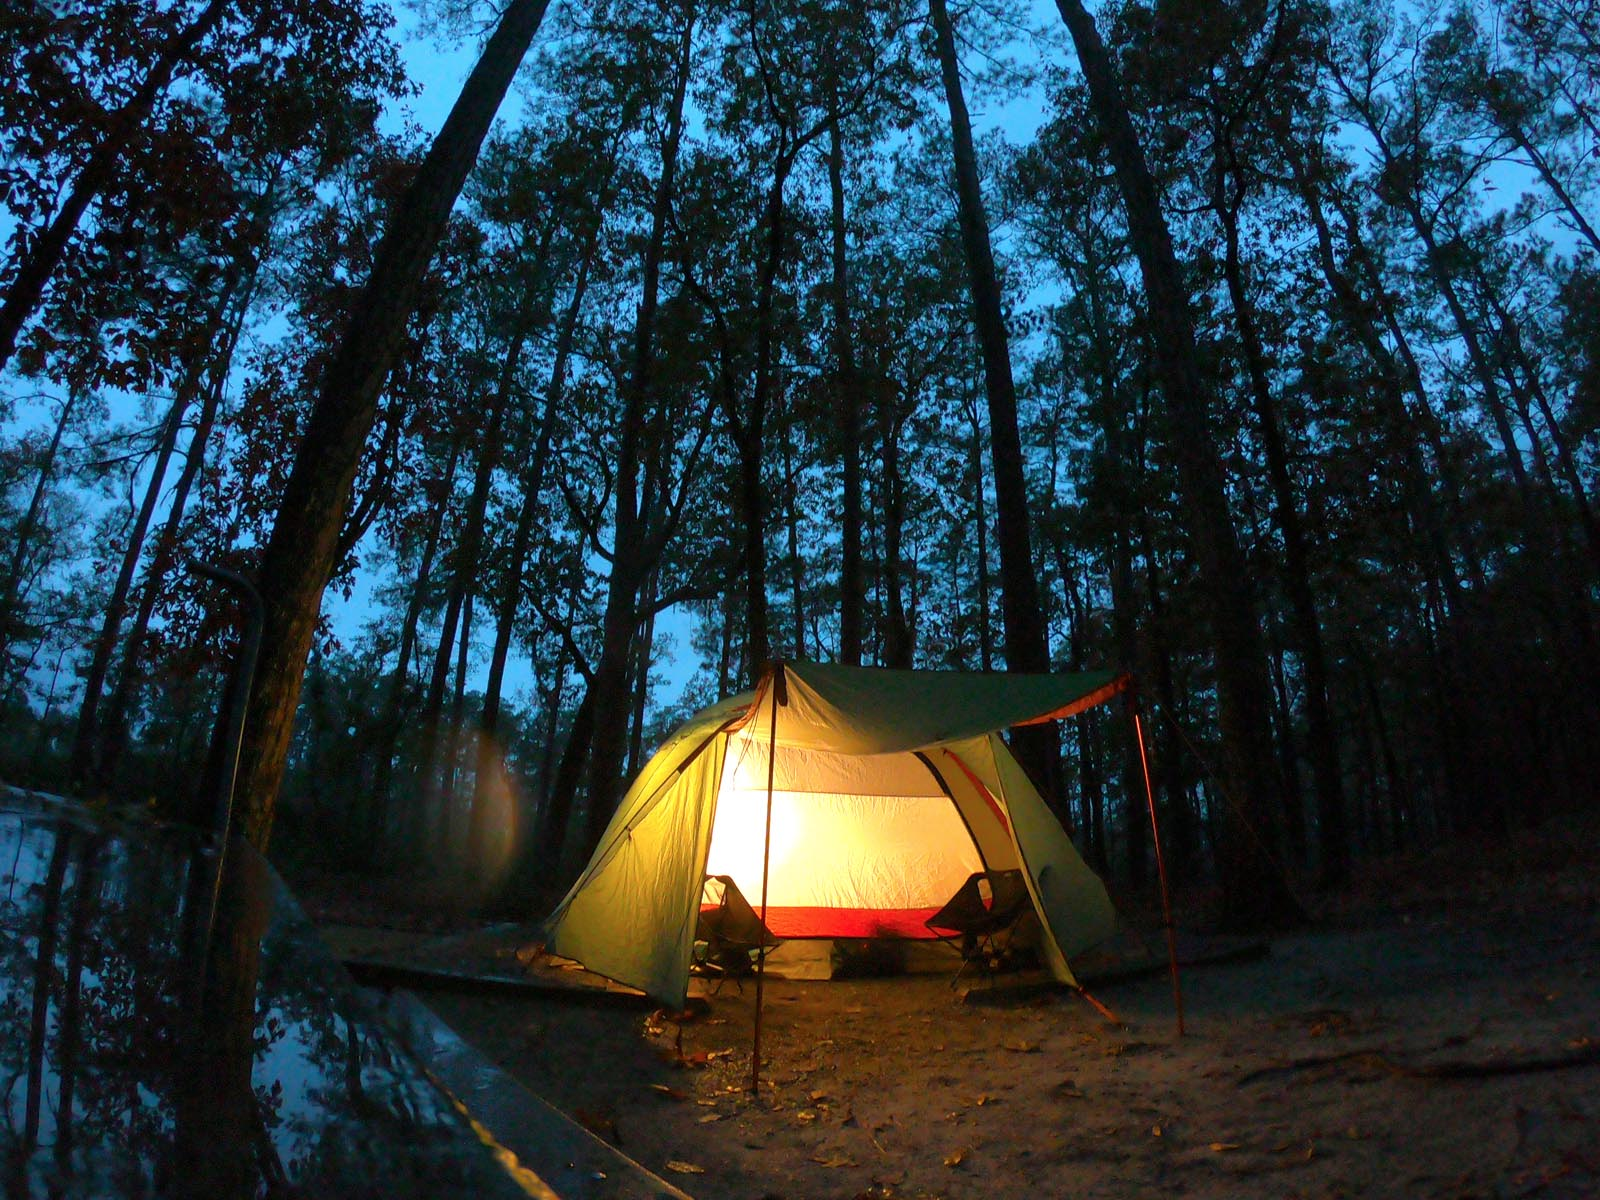 Tent lighting up the night at campsite at Goose Creek State Park, North Carolina